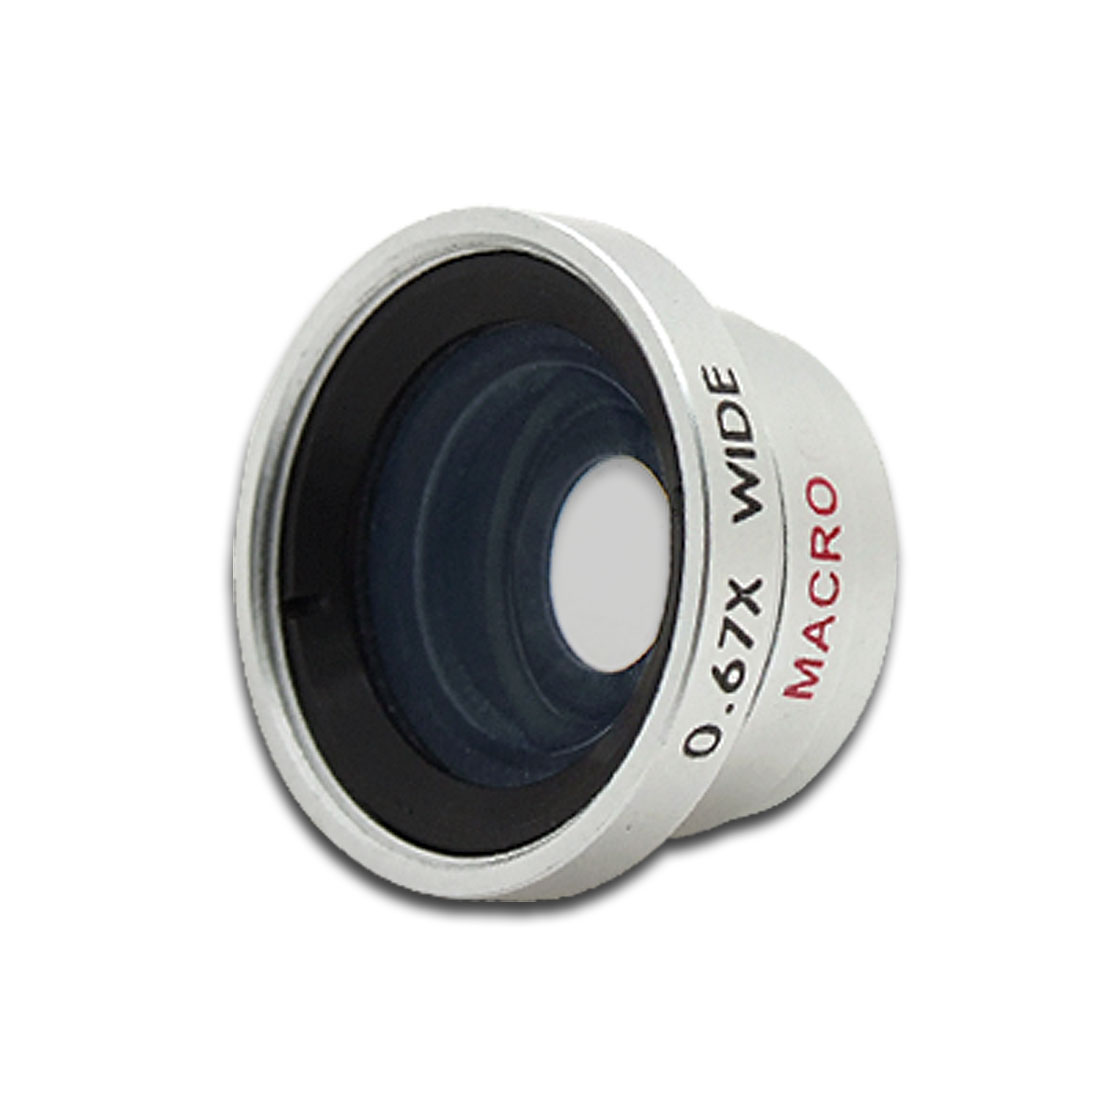 0.67x Wide Angle Macro Lens for Mobile Digital Camera